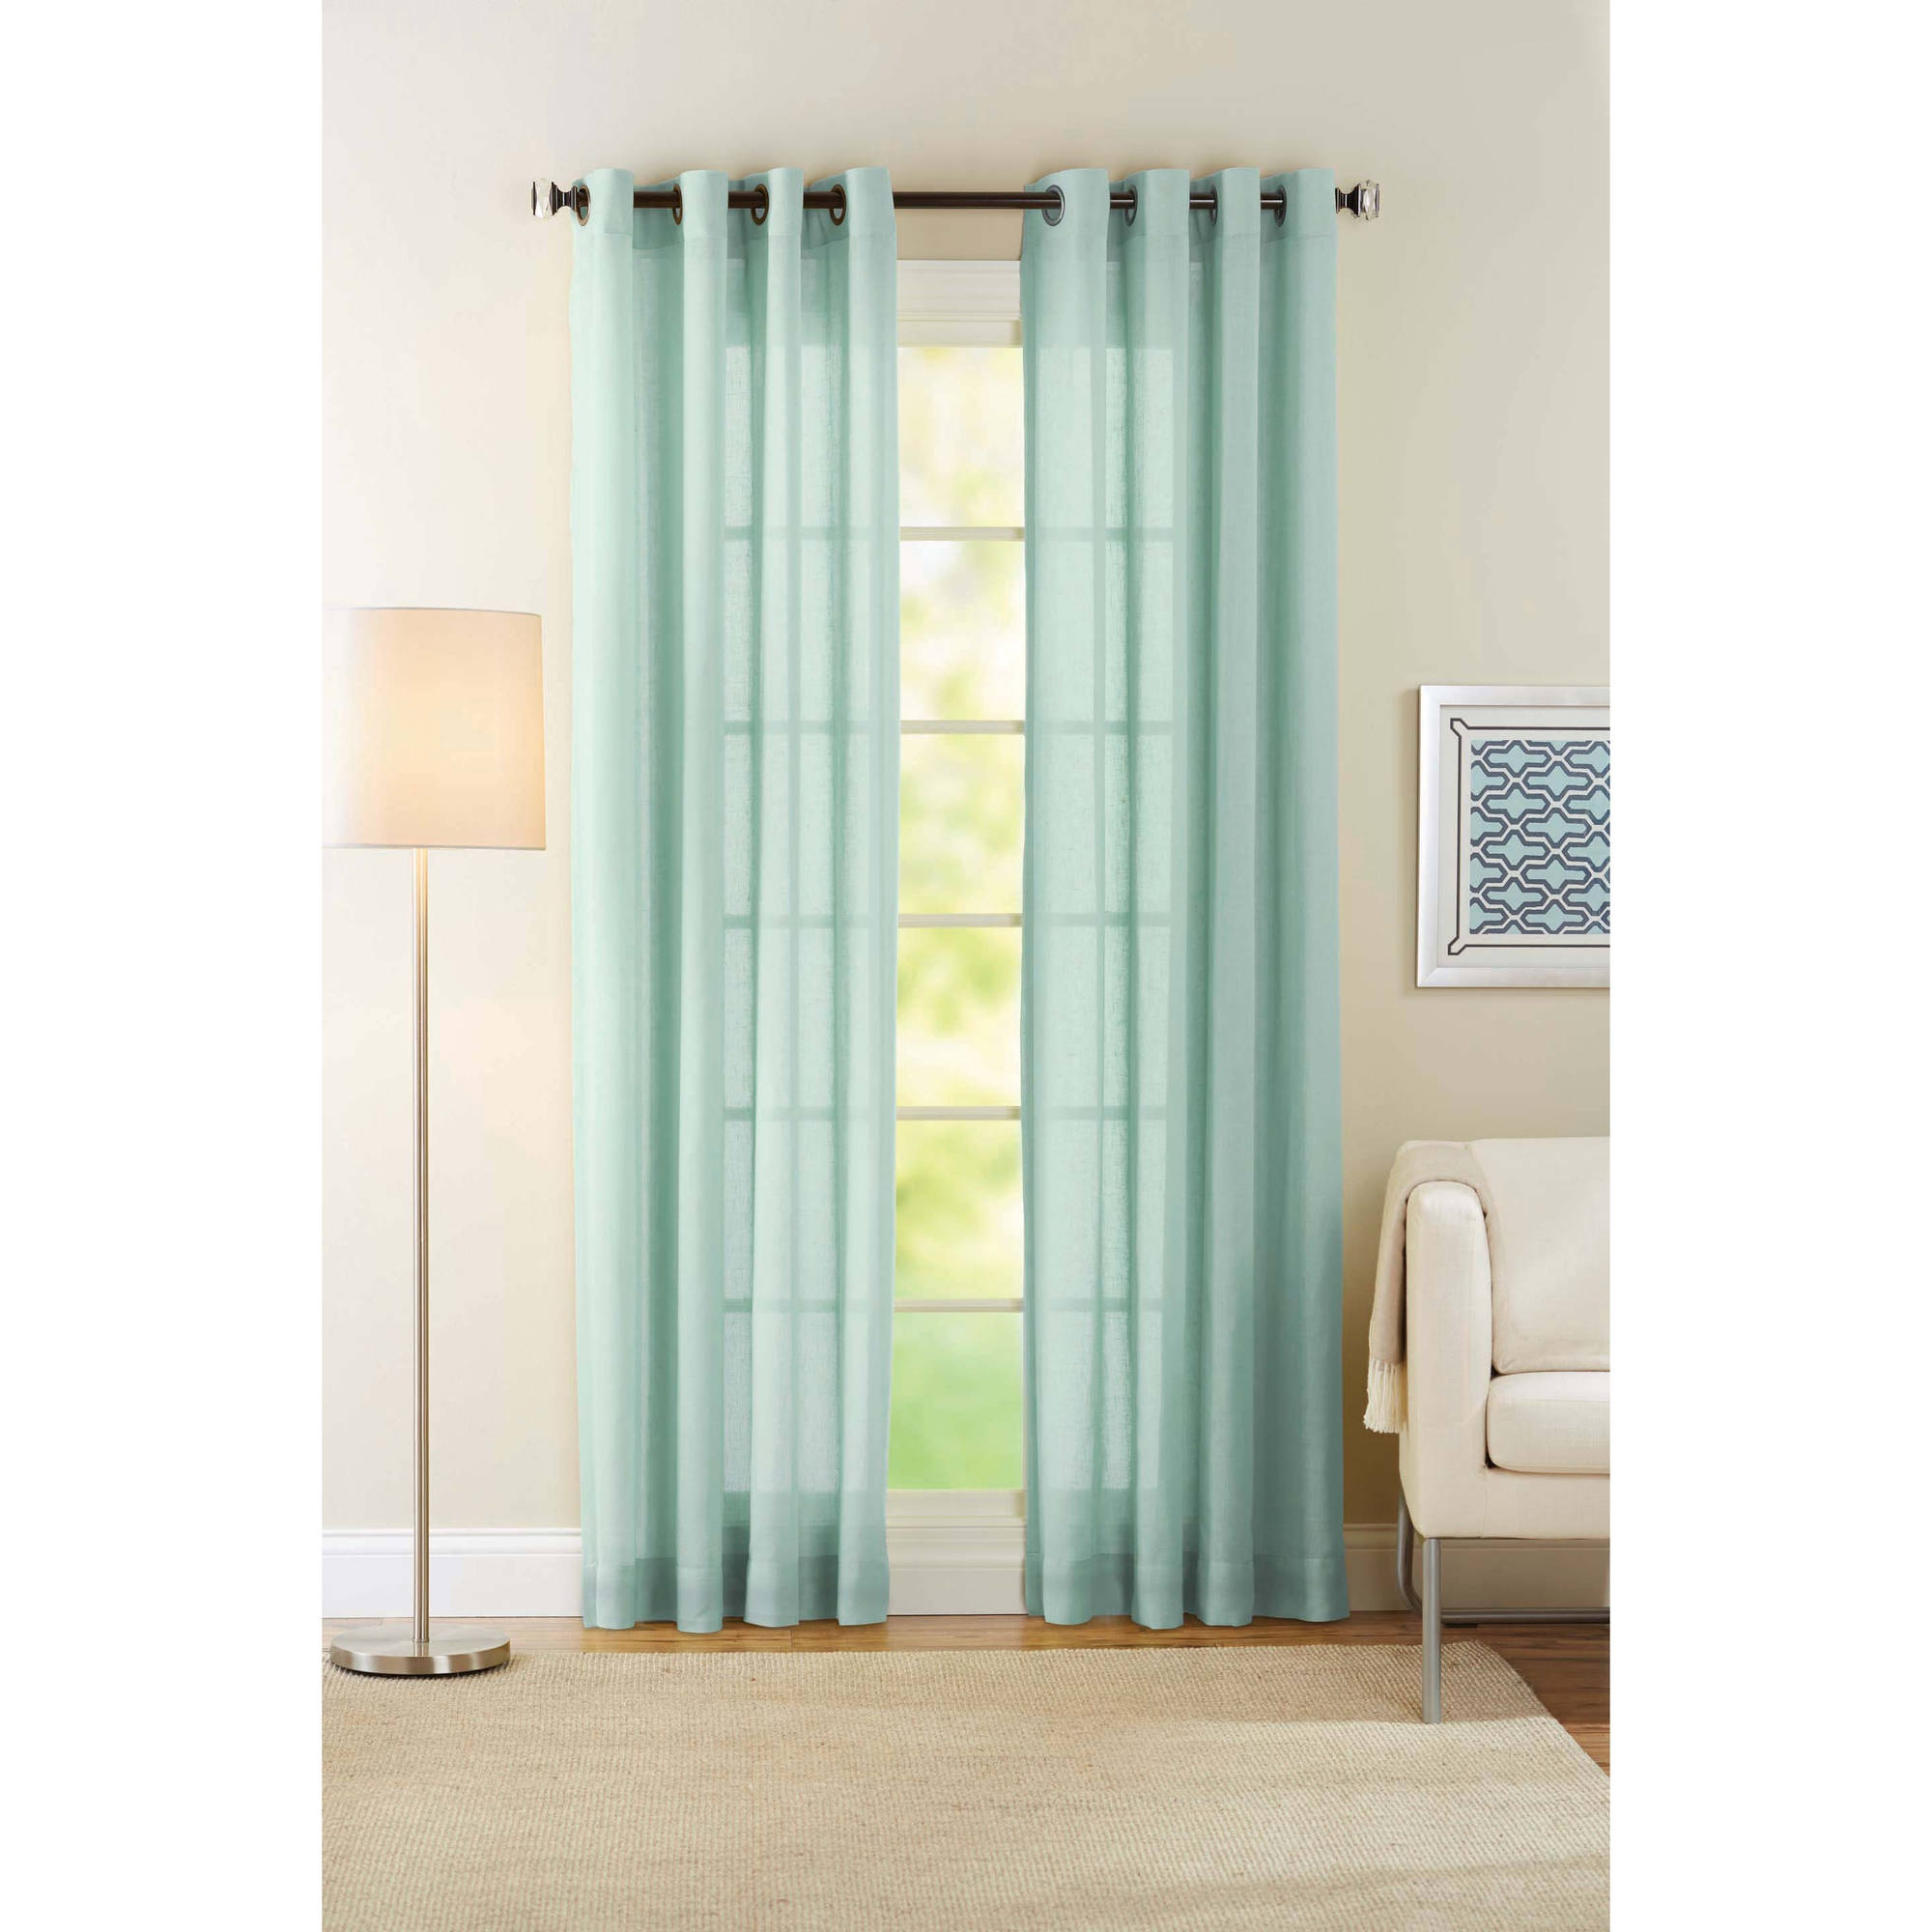 Better Homes And Gardens Semi Sheer Window Curtain Walmart In Sheer White Curtain Panels (Image 3 of 25)